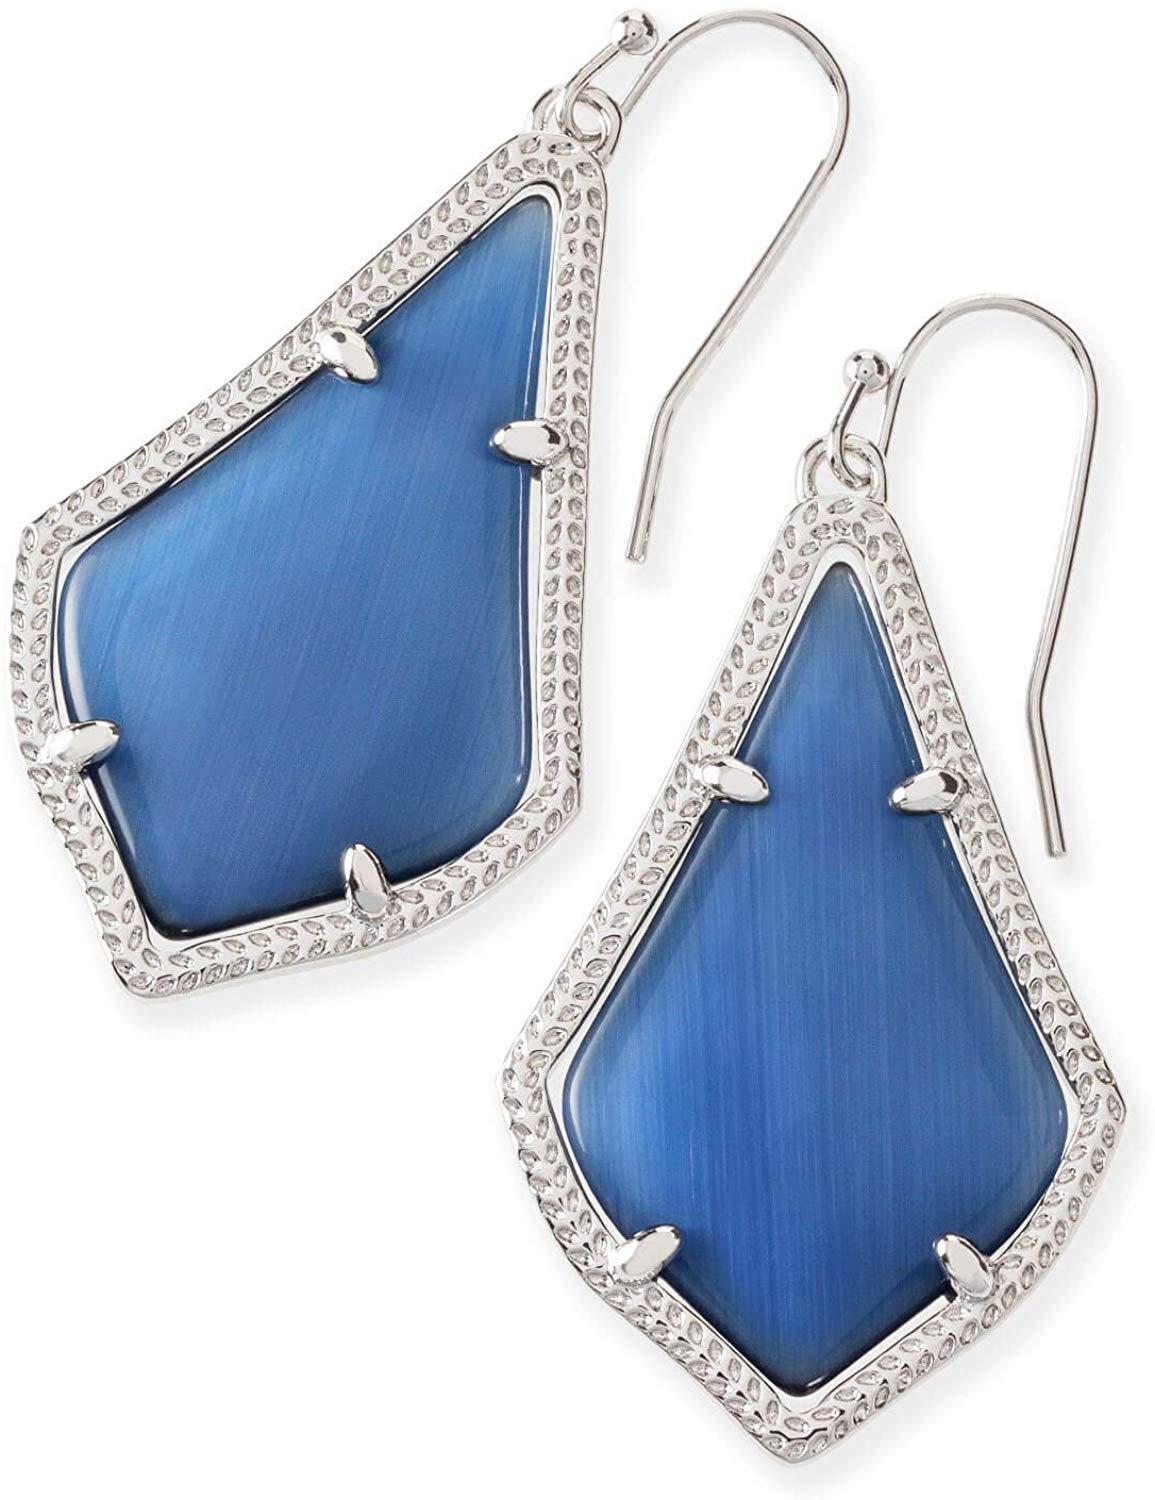 Kendra Scott Alex Navy Cats Eye Rhodium Earrings - 4217715291